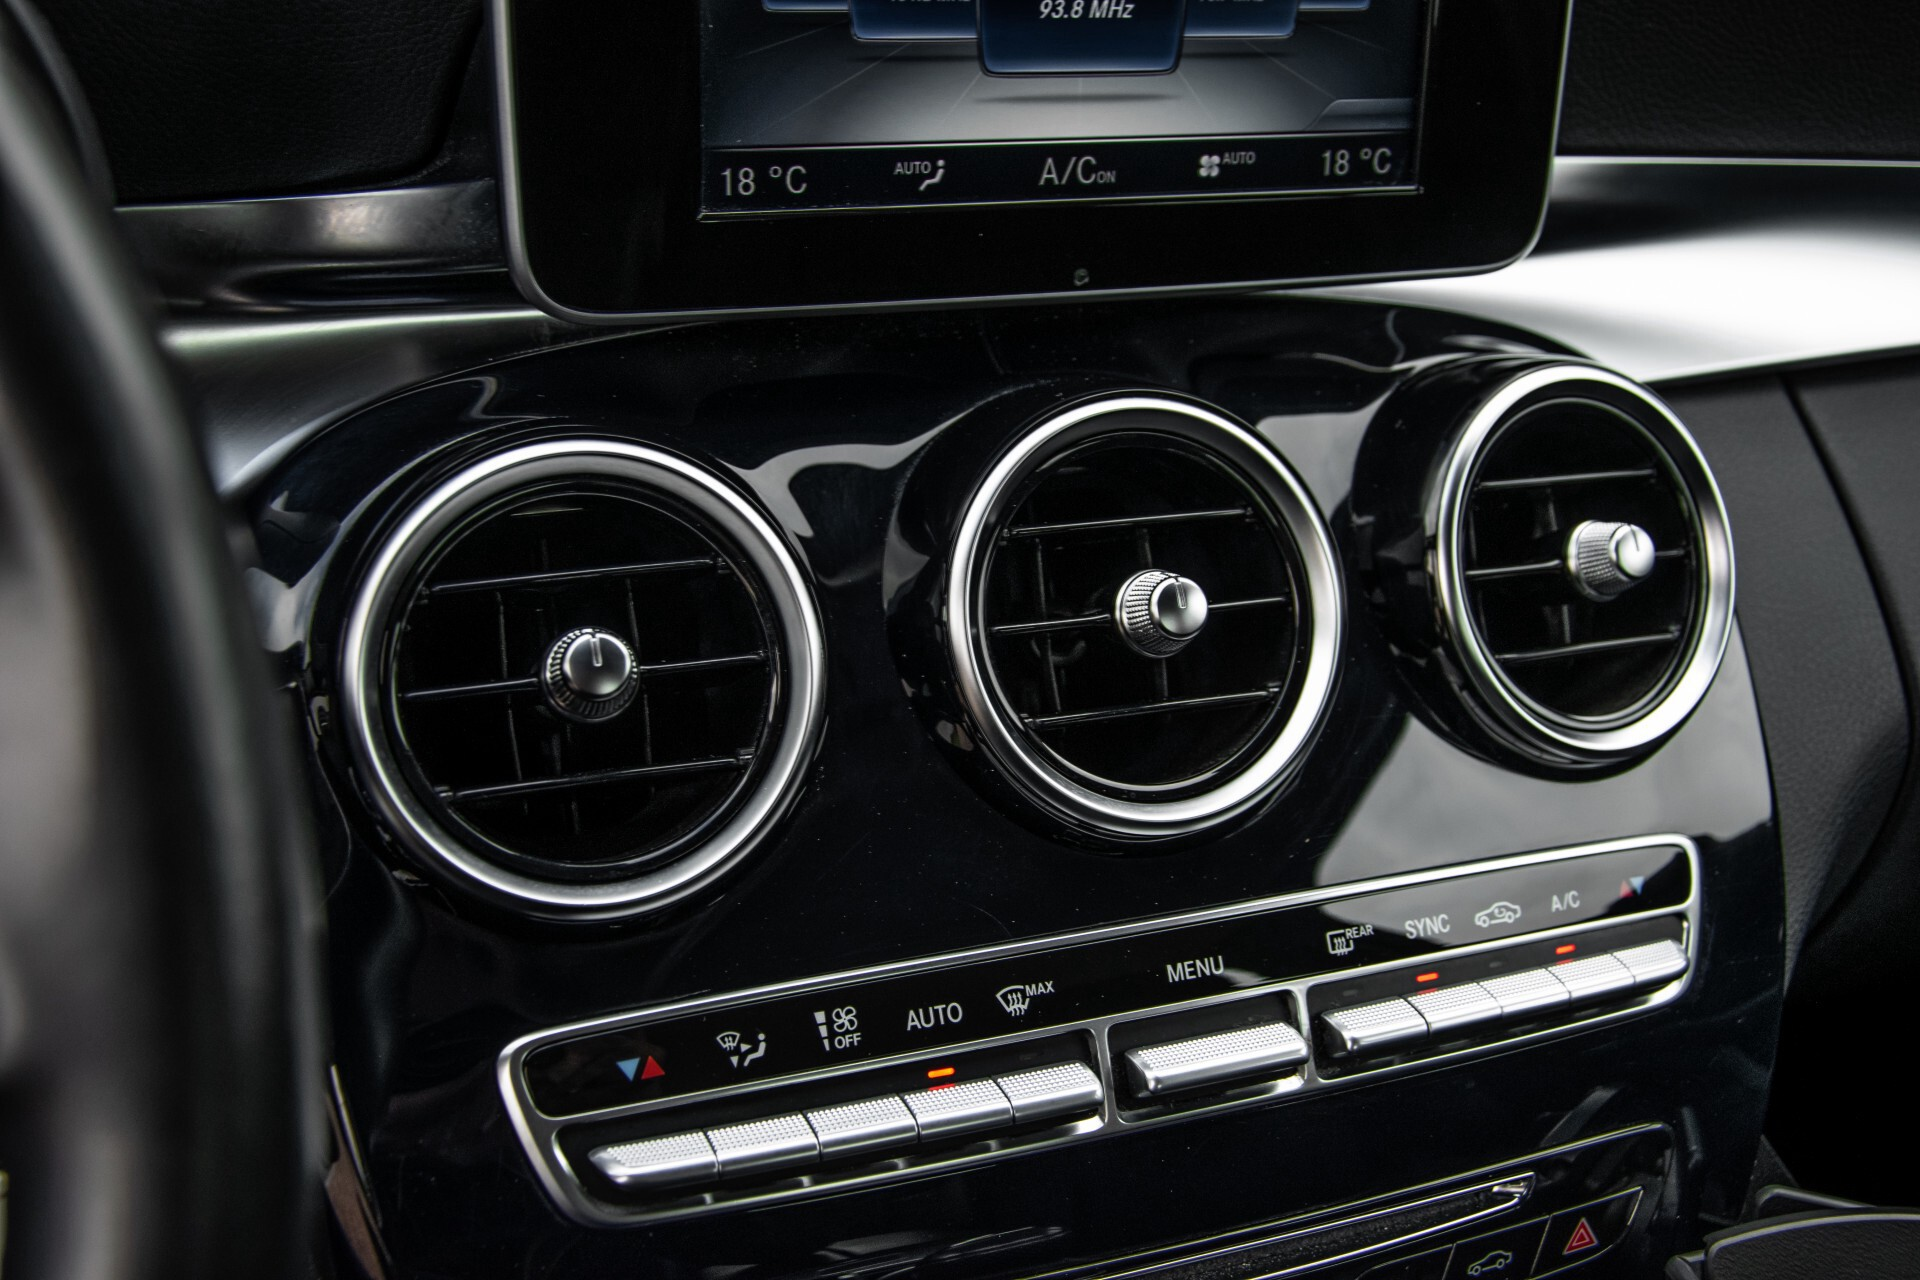 Mercedes-Benz C-Klasse 180 Bluetec Lease Edition Intelligent Light System/Cruise Control/Navi Foto 22